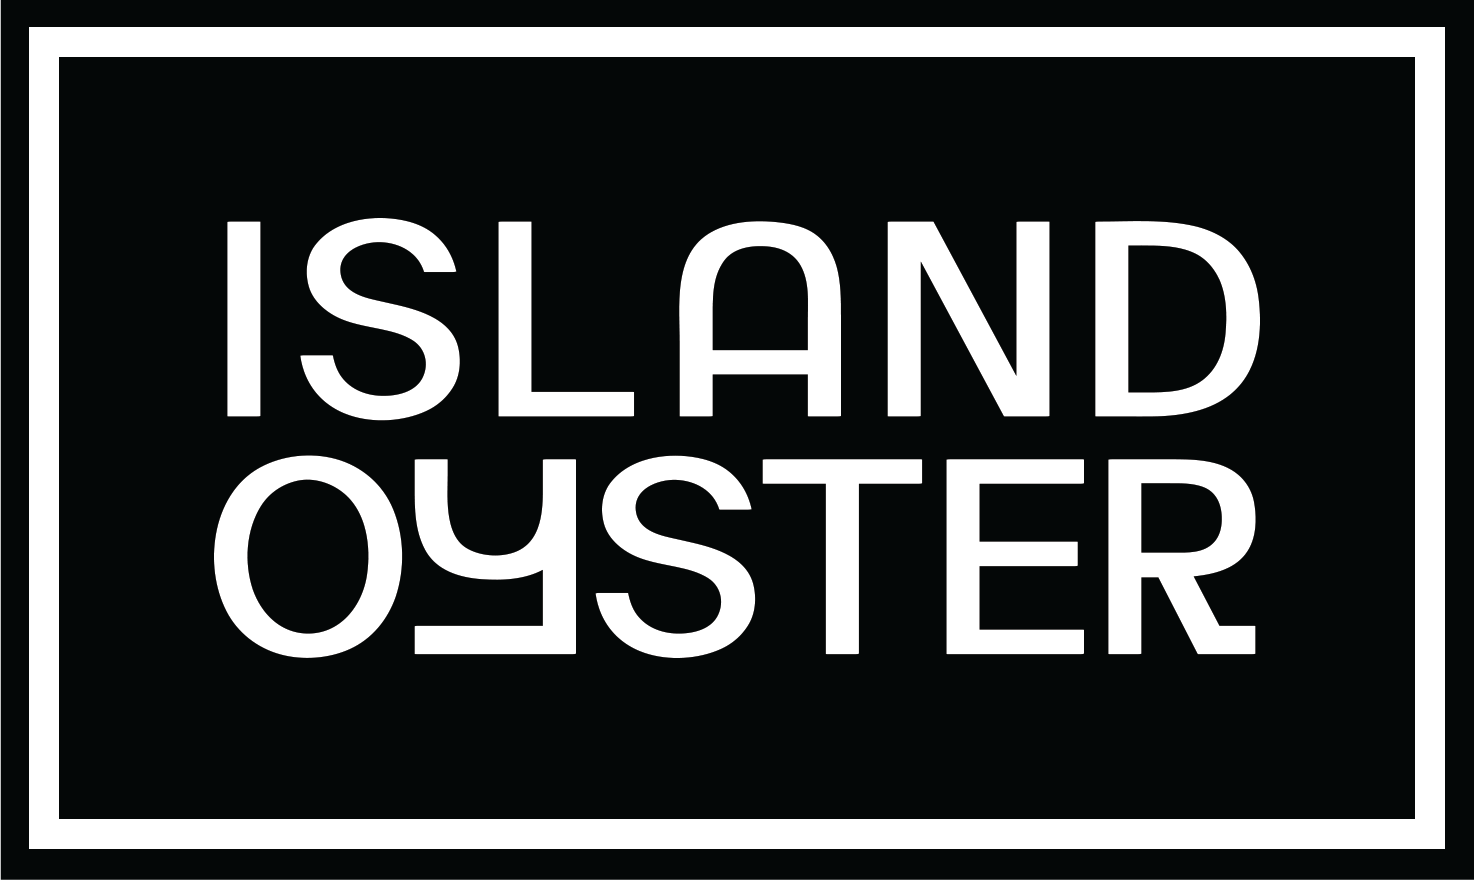 island oyster-01.png